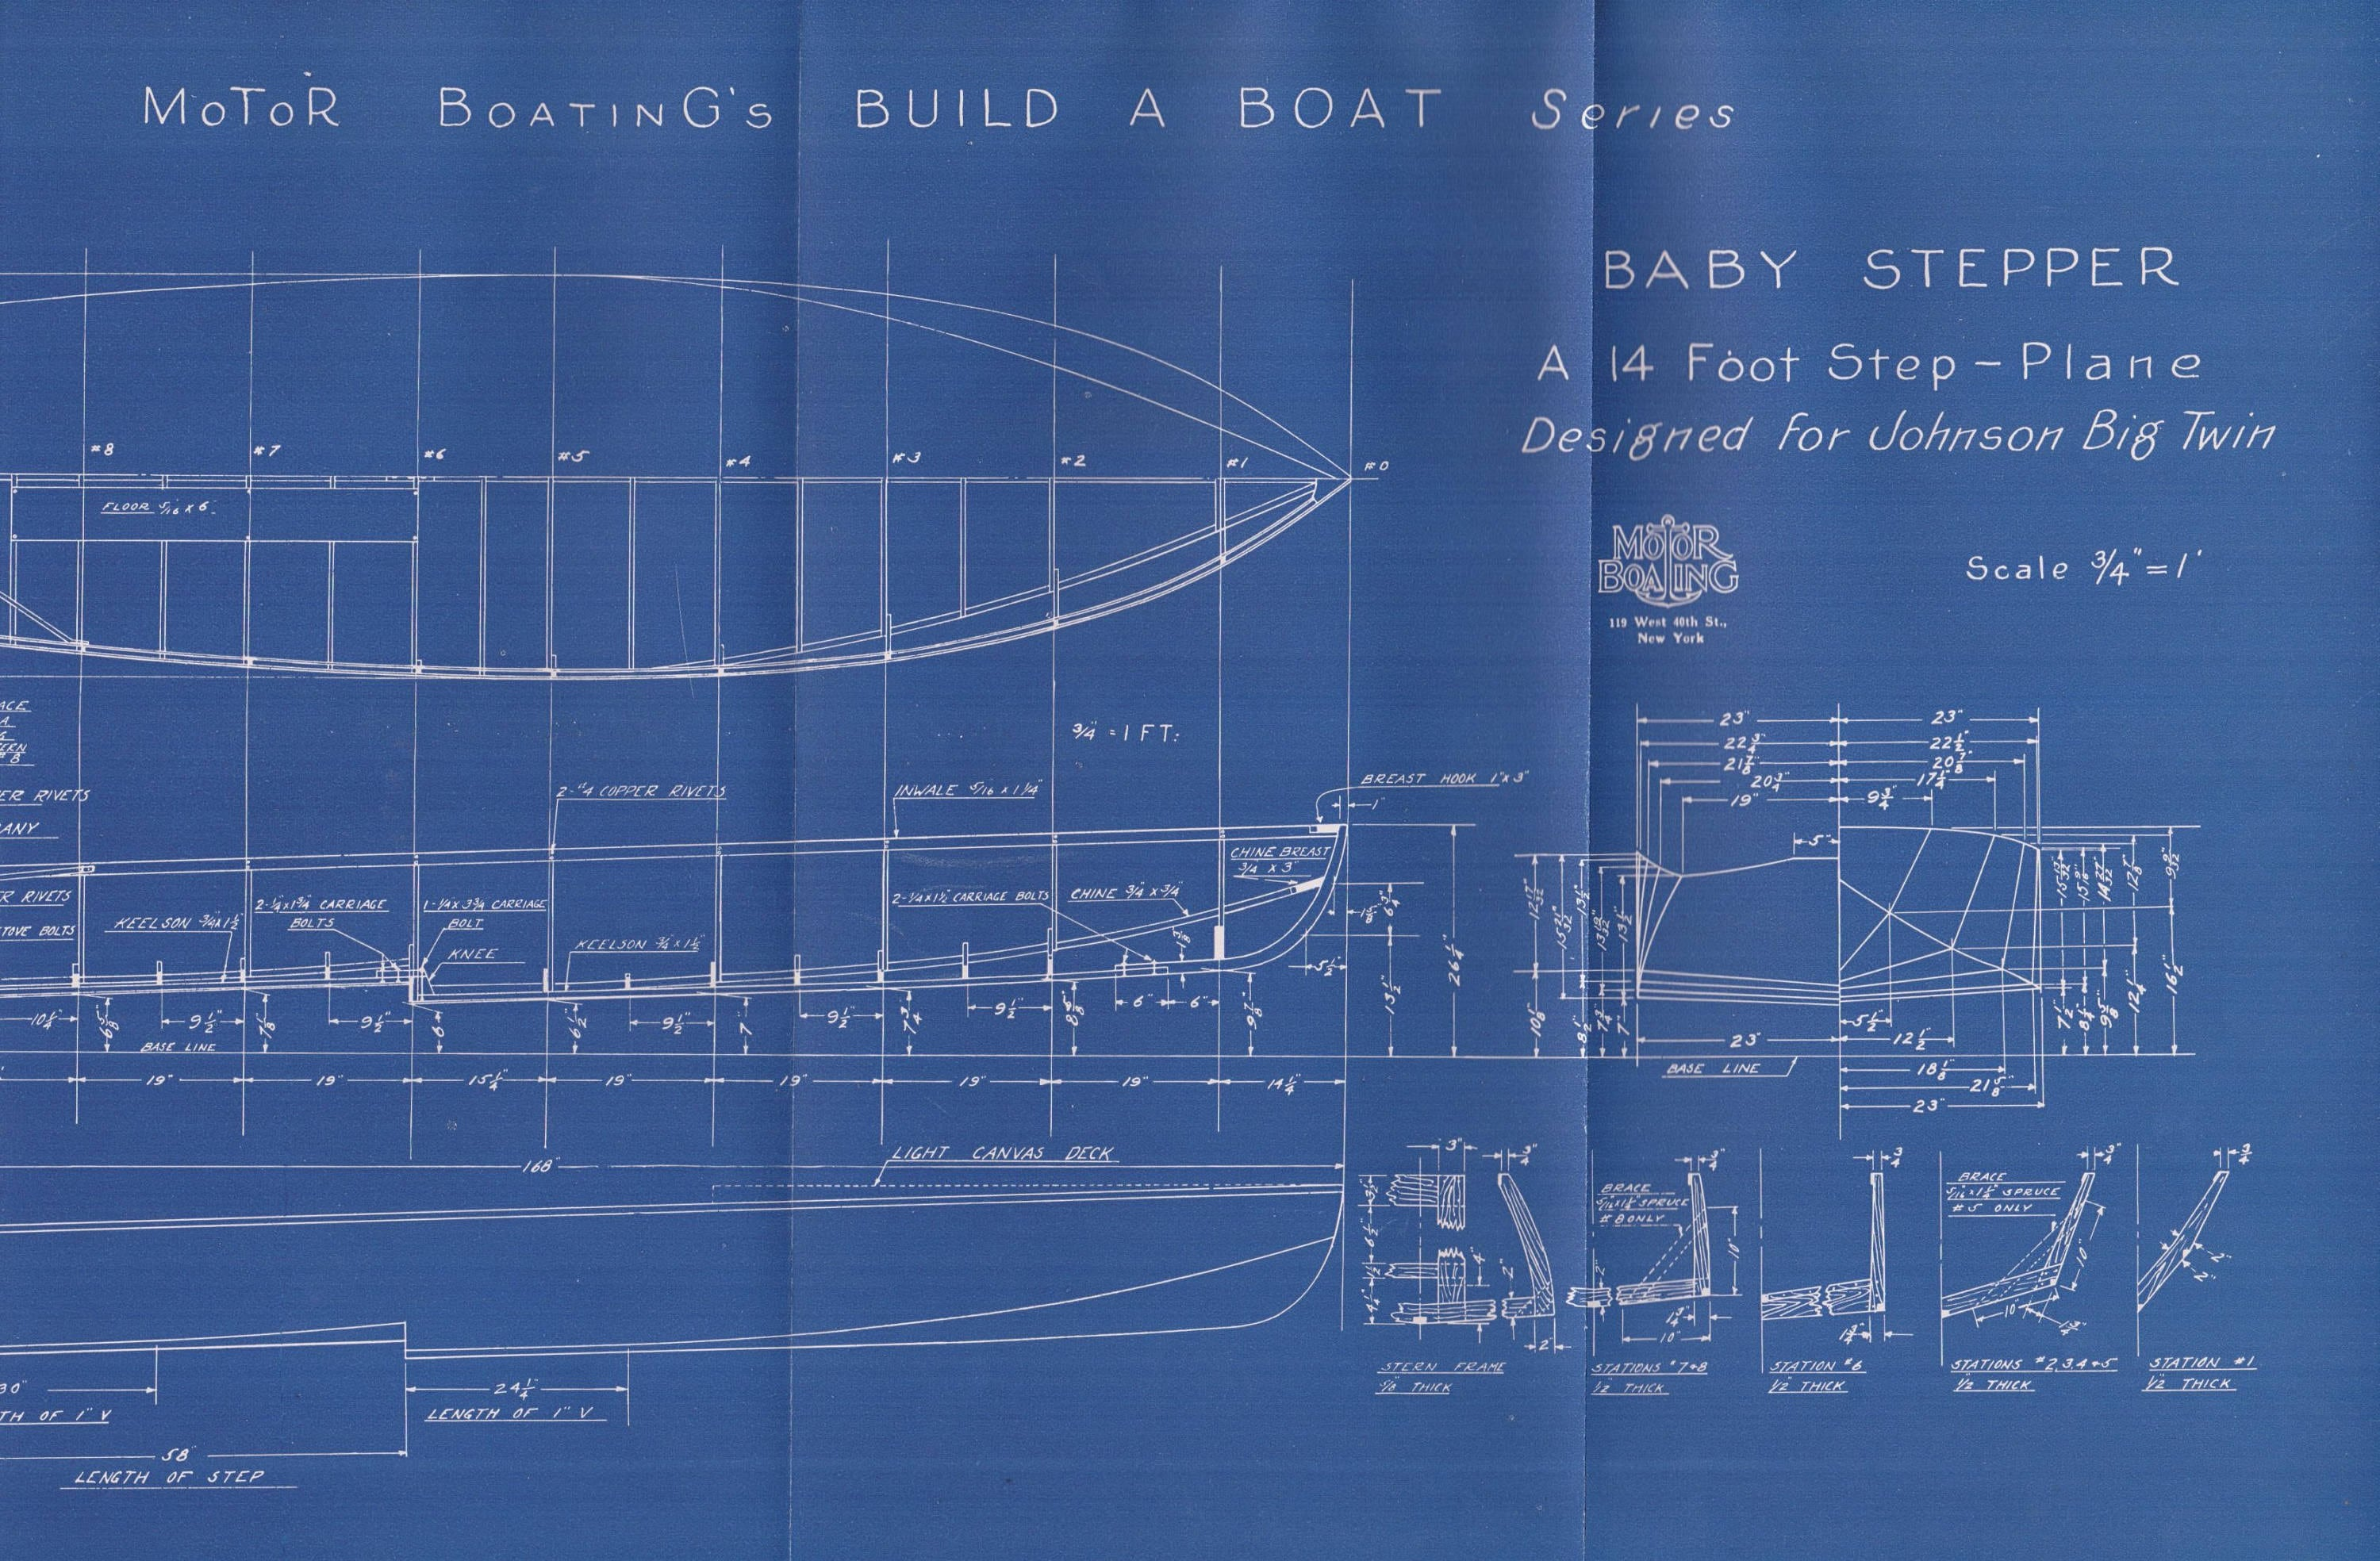 1927 antique blueprint vintage ship blueprint boat blueprint step 1927 antique blueprint vintage ship blueprint boat blueprint step plane boat nautical art urban industrial decor malvernweather Gallery